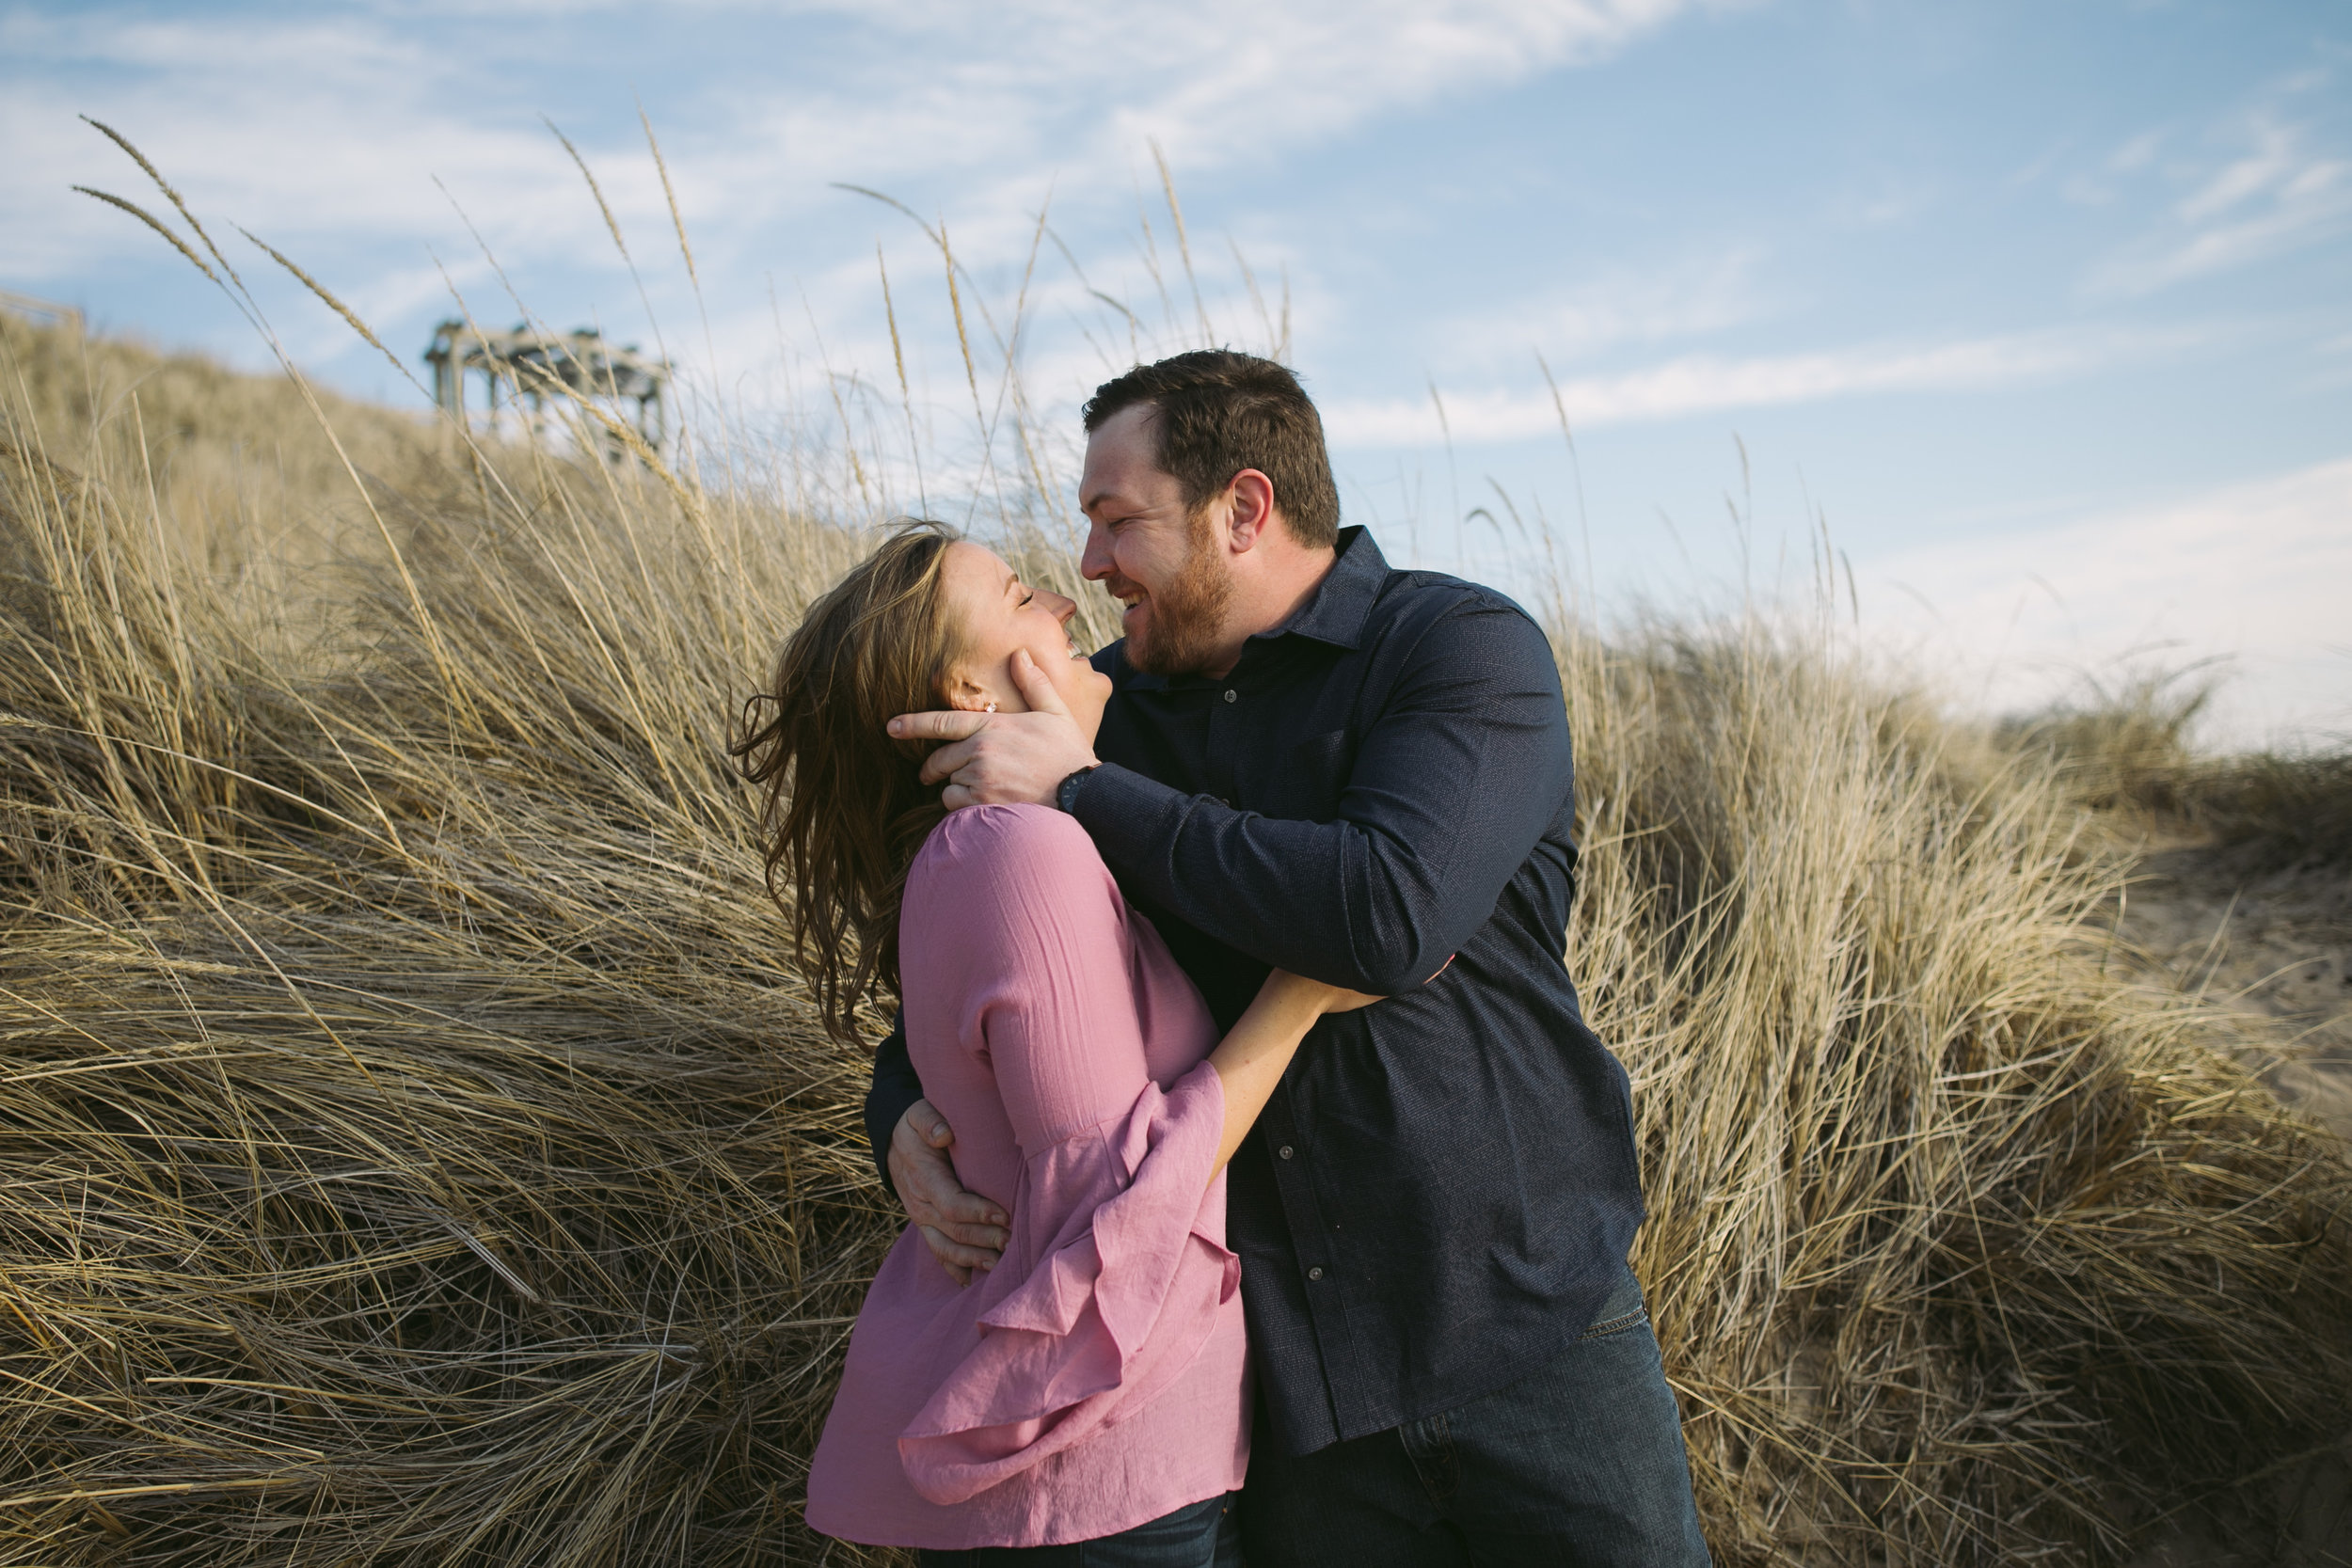 grandrapidsphotographer_hollandmichigan_hollandphotographer_lakemichigan_beachwedding_grandrapids_engaged_jessicadarling_jdarlingphoto_beachengagement010.jpg